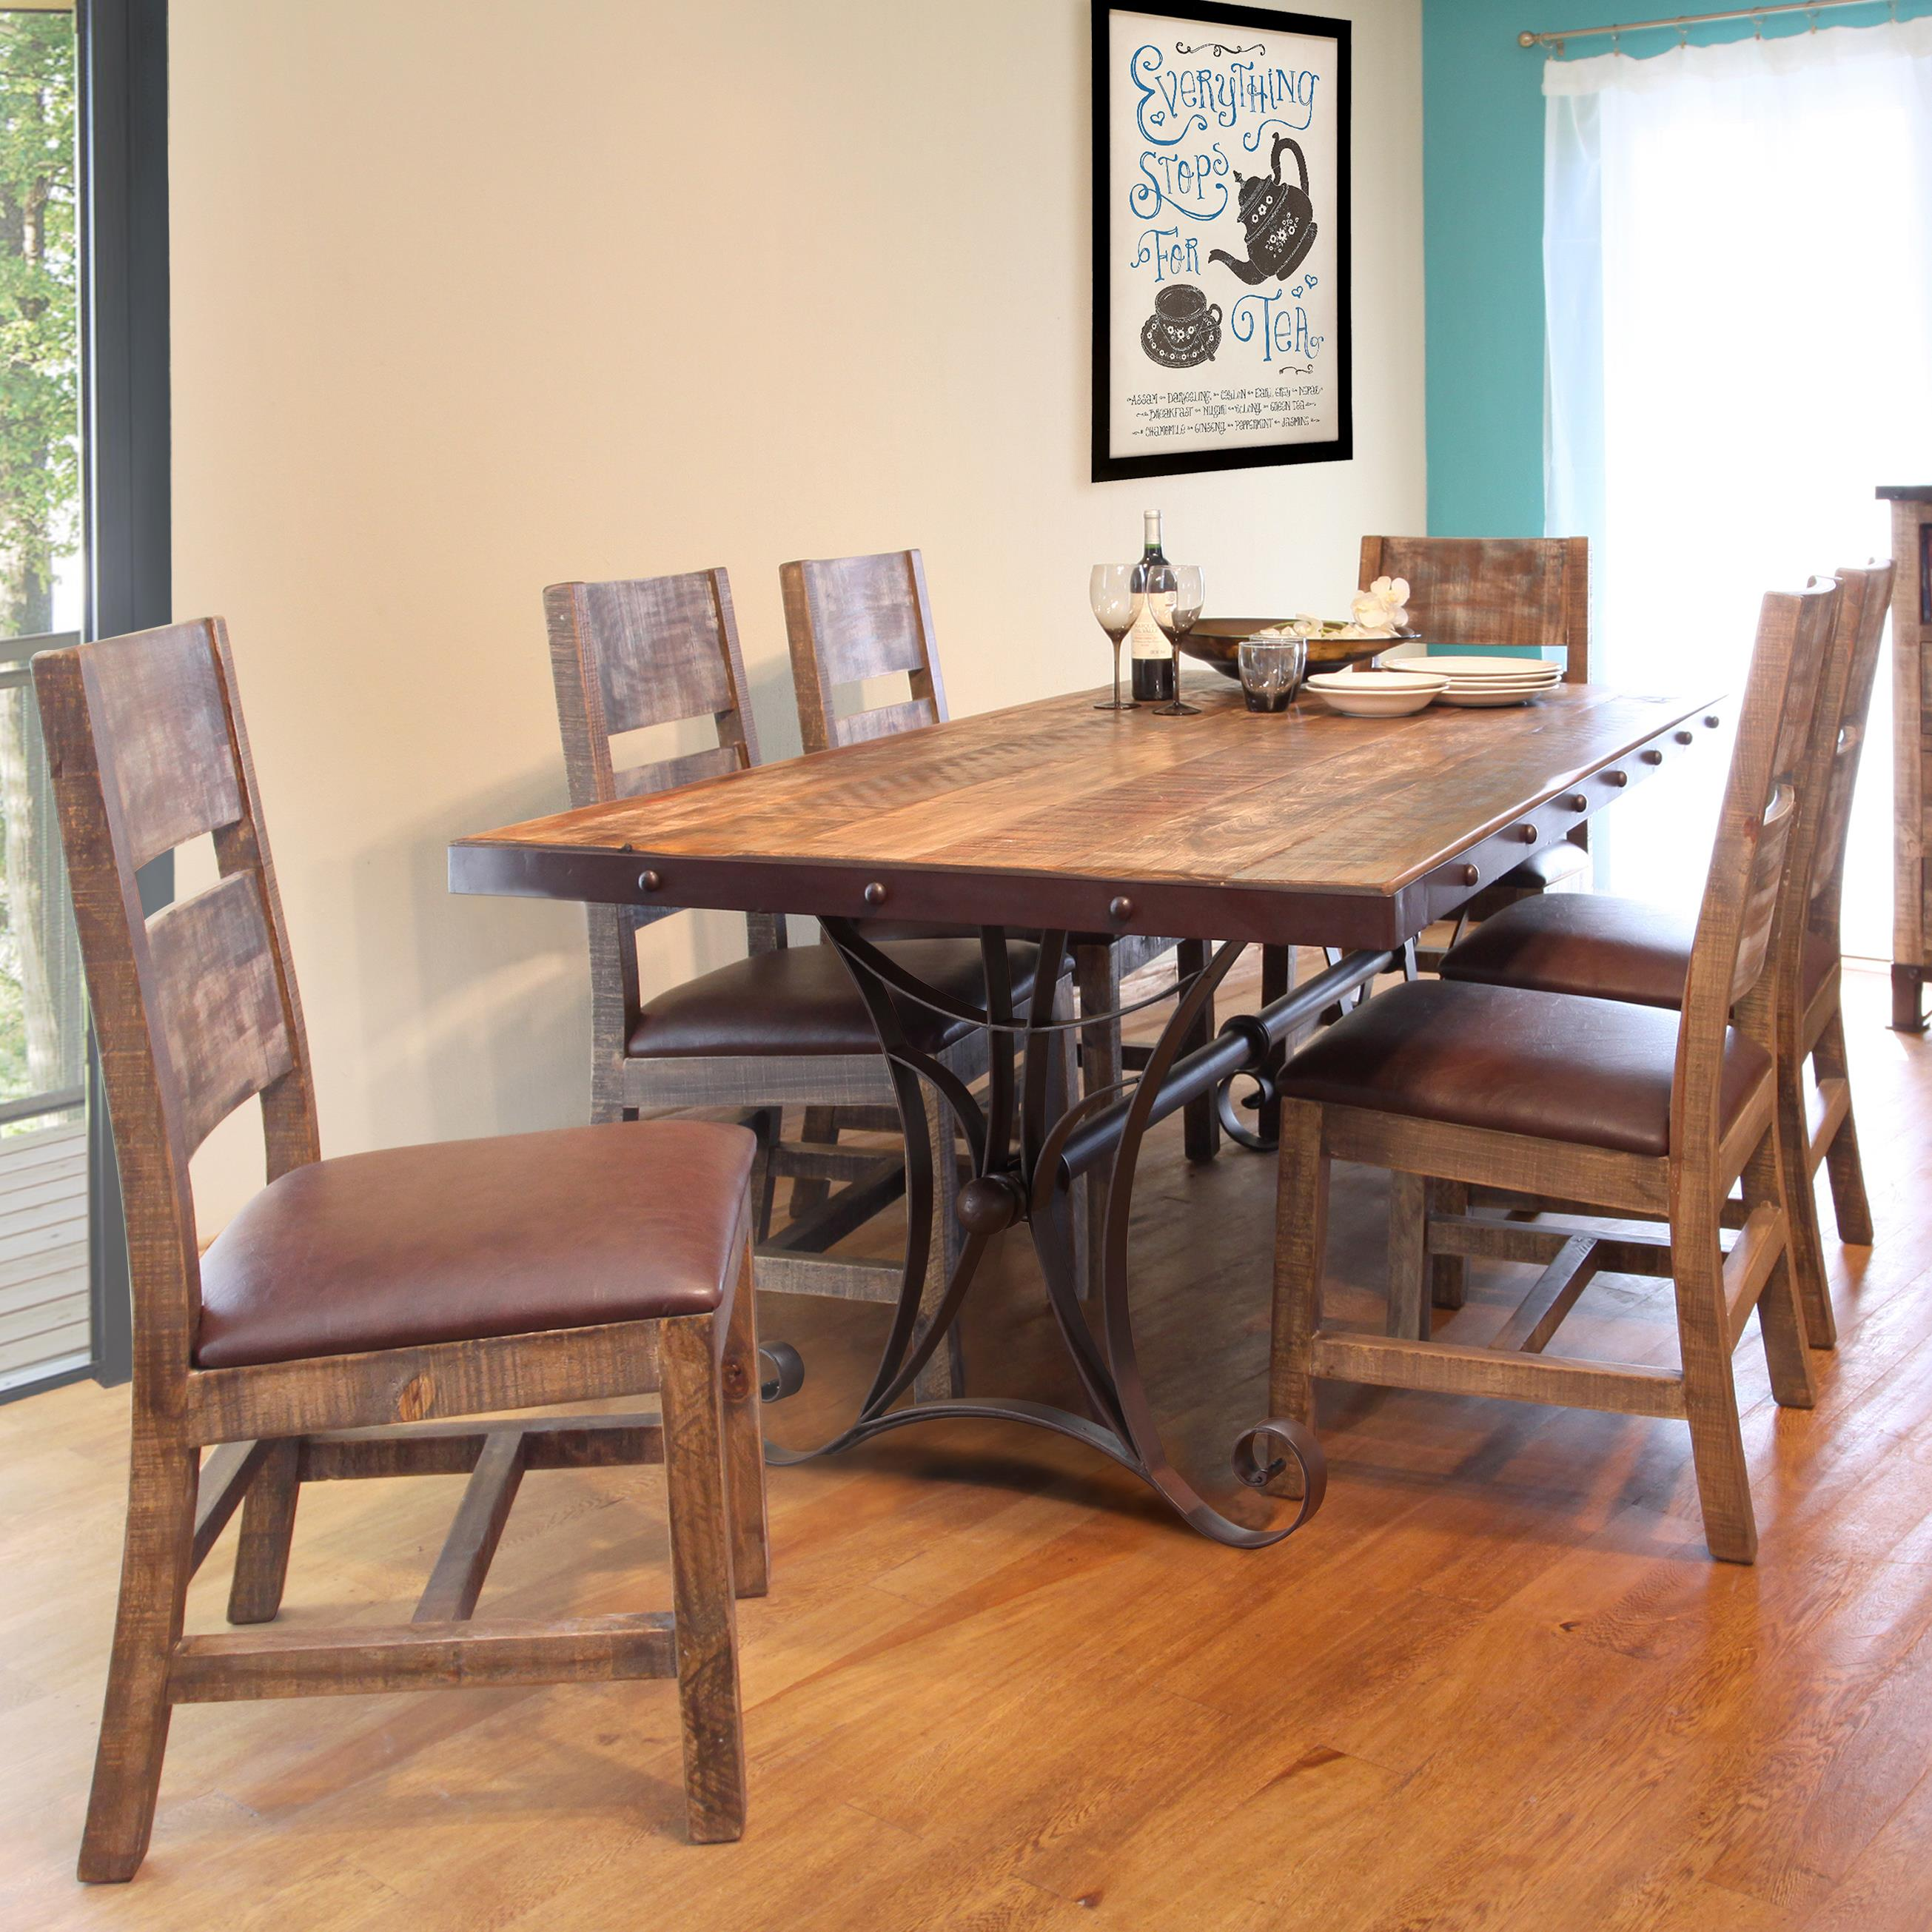 900 Antique 7 Piece Dining Set by International Furniture Direct at Sparks HomeStore